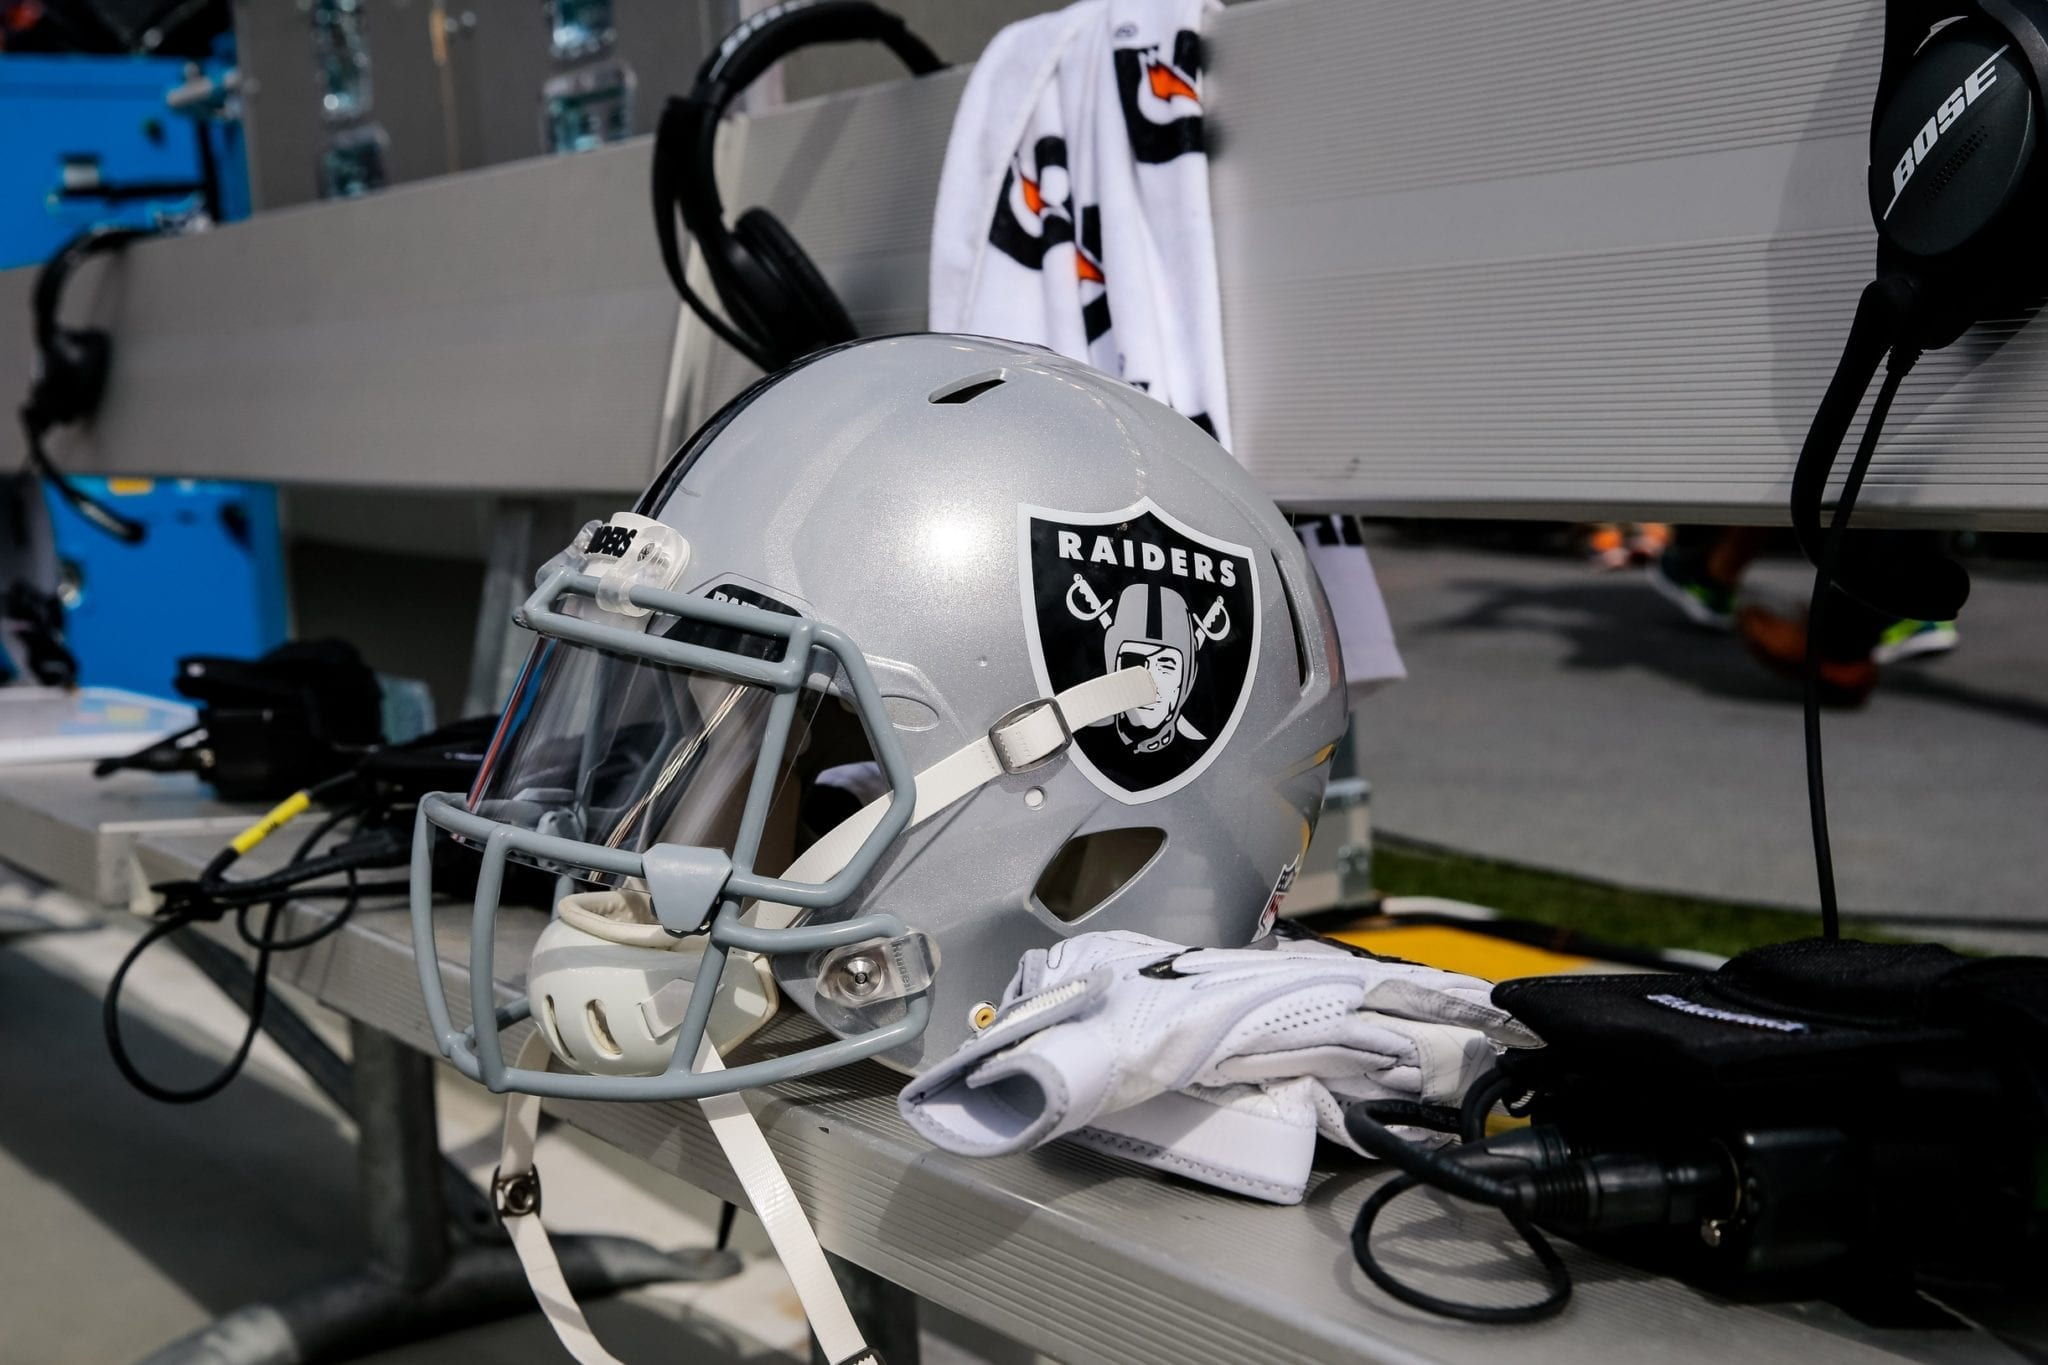 Raiders-helmet-7